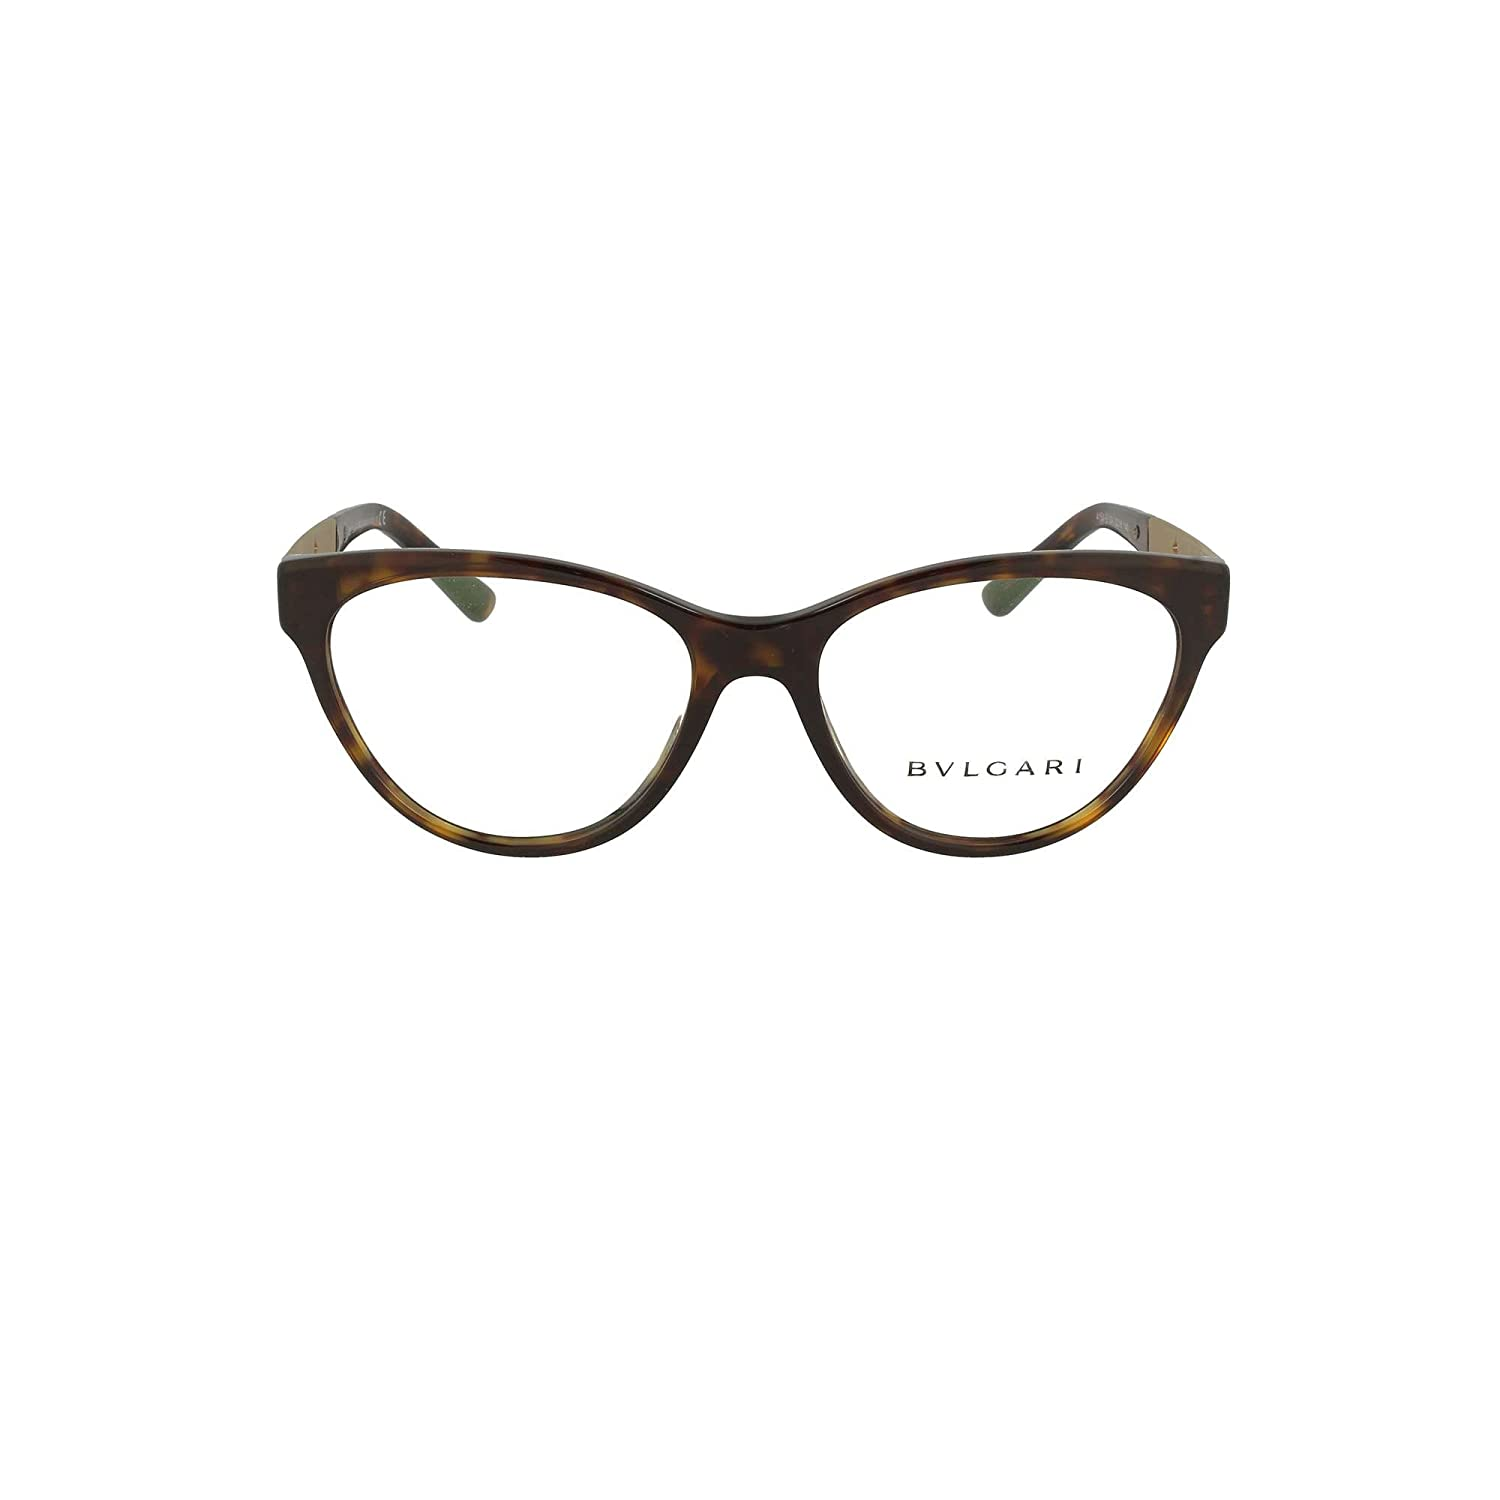 d2391950e66 bvlgari Women s Prescription Eyewear Frame beige Havana One size   Amazon.co.uk  Clothing